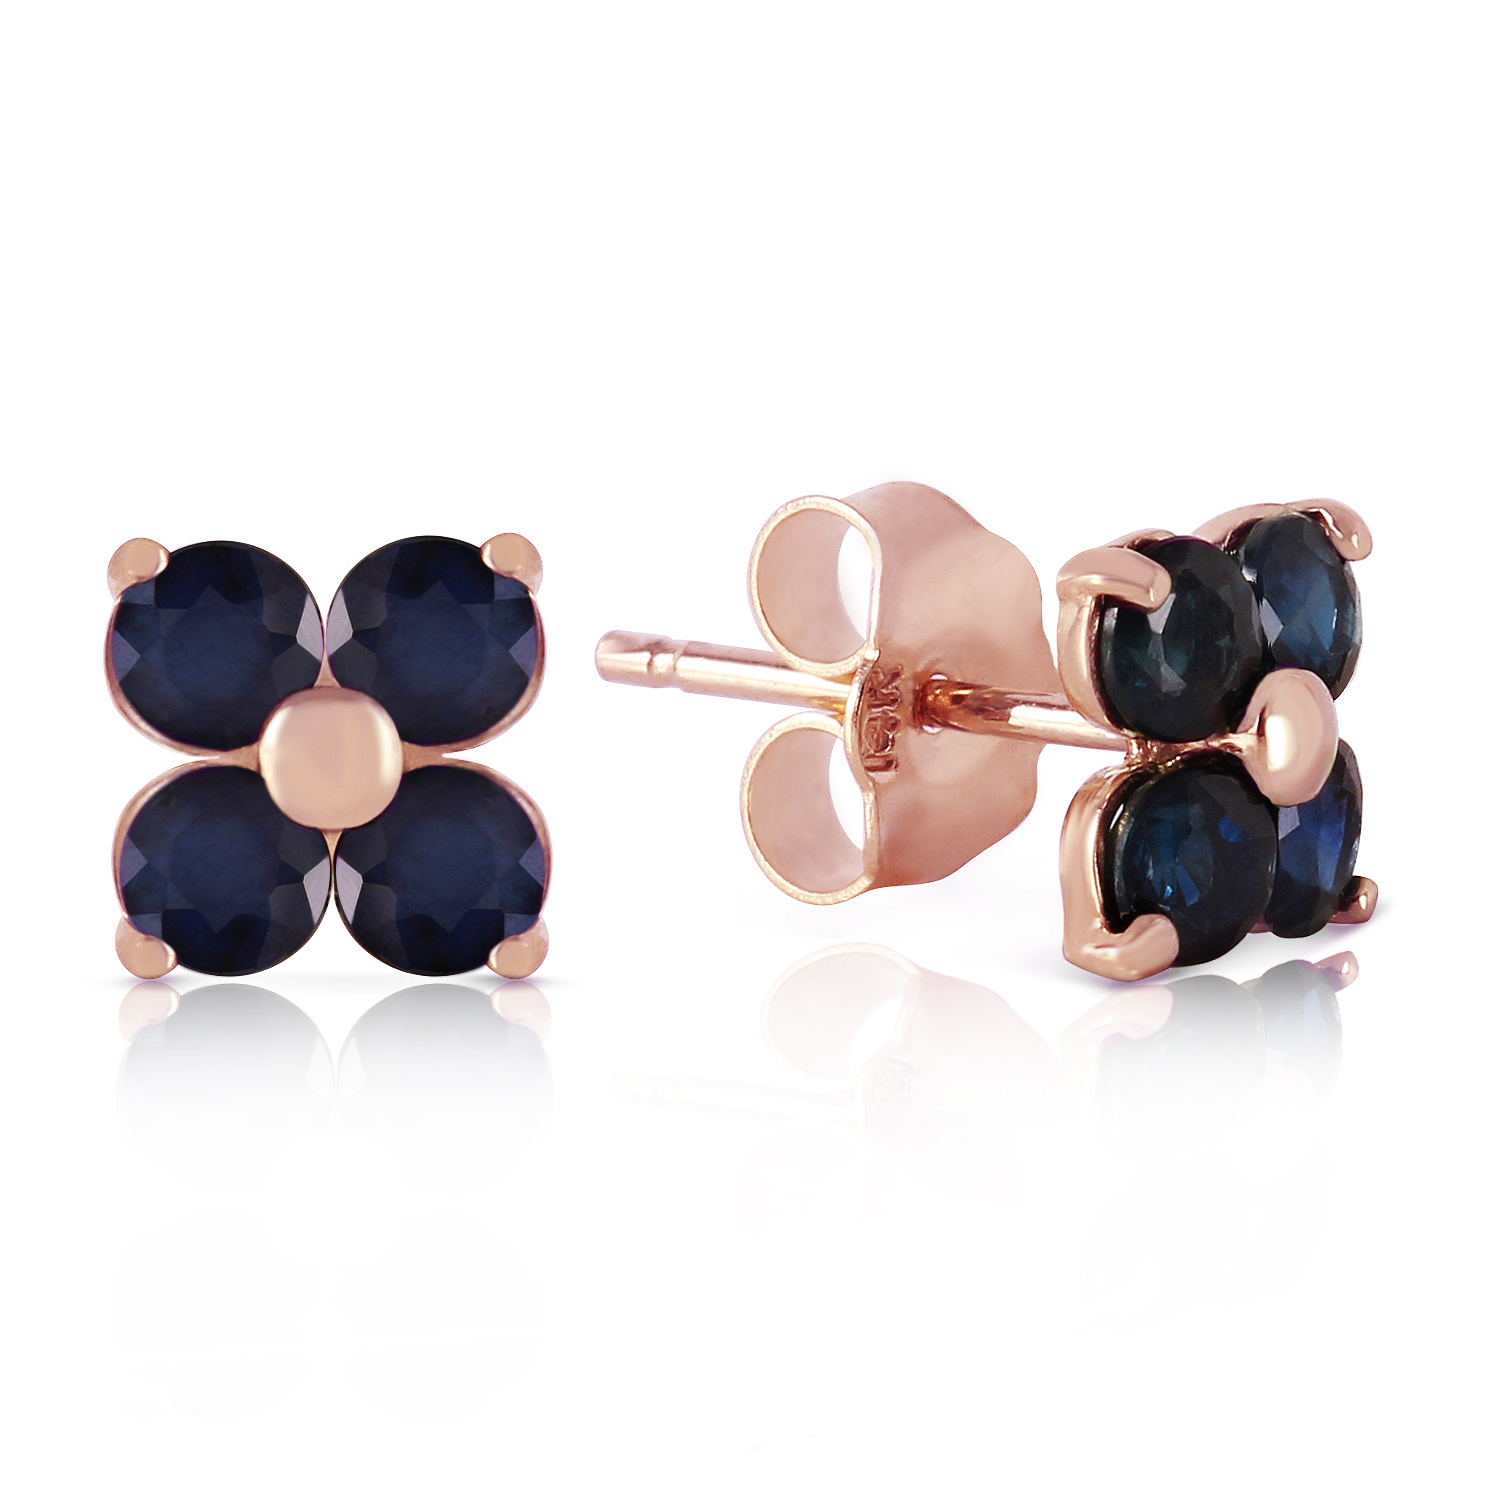 Primary image for 14K Solid Rose Gold Stud Earrings with Natural Sapphires 6mm Gemstones